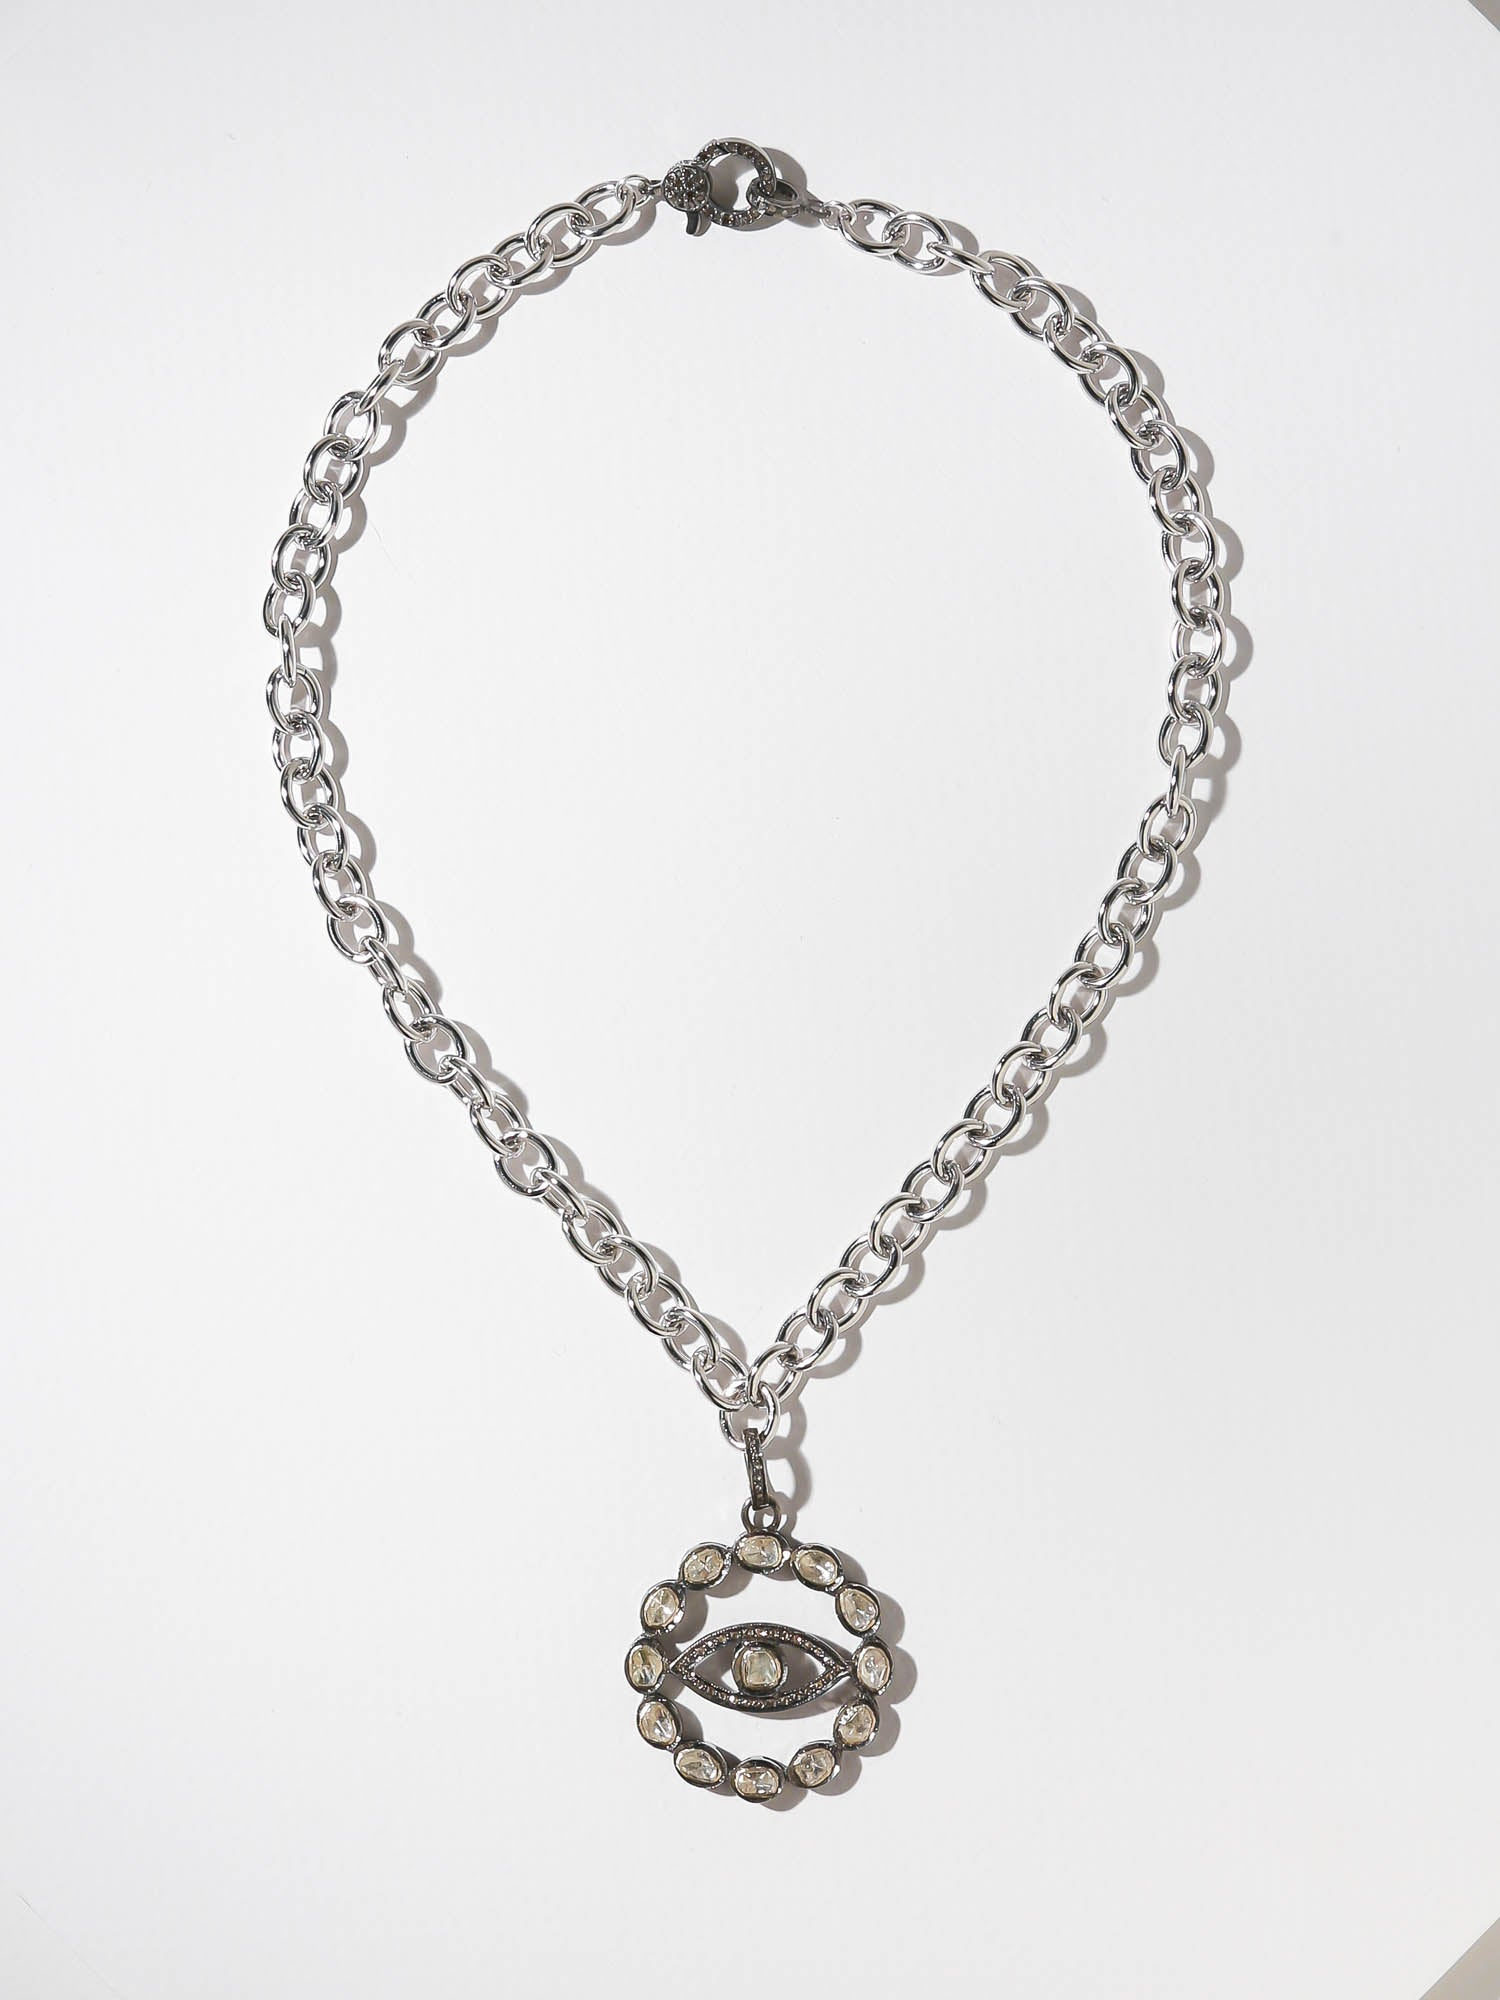 The Phoebe Evil Eye Necklace